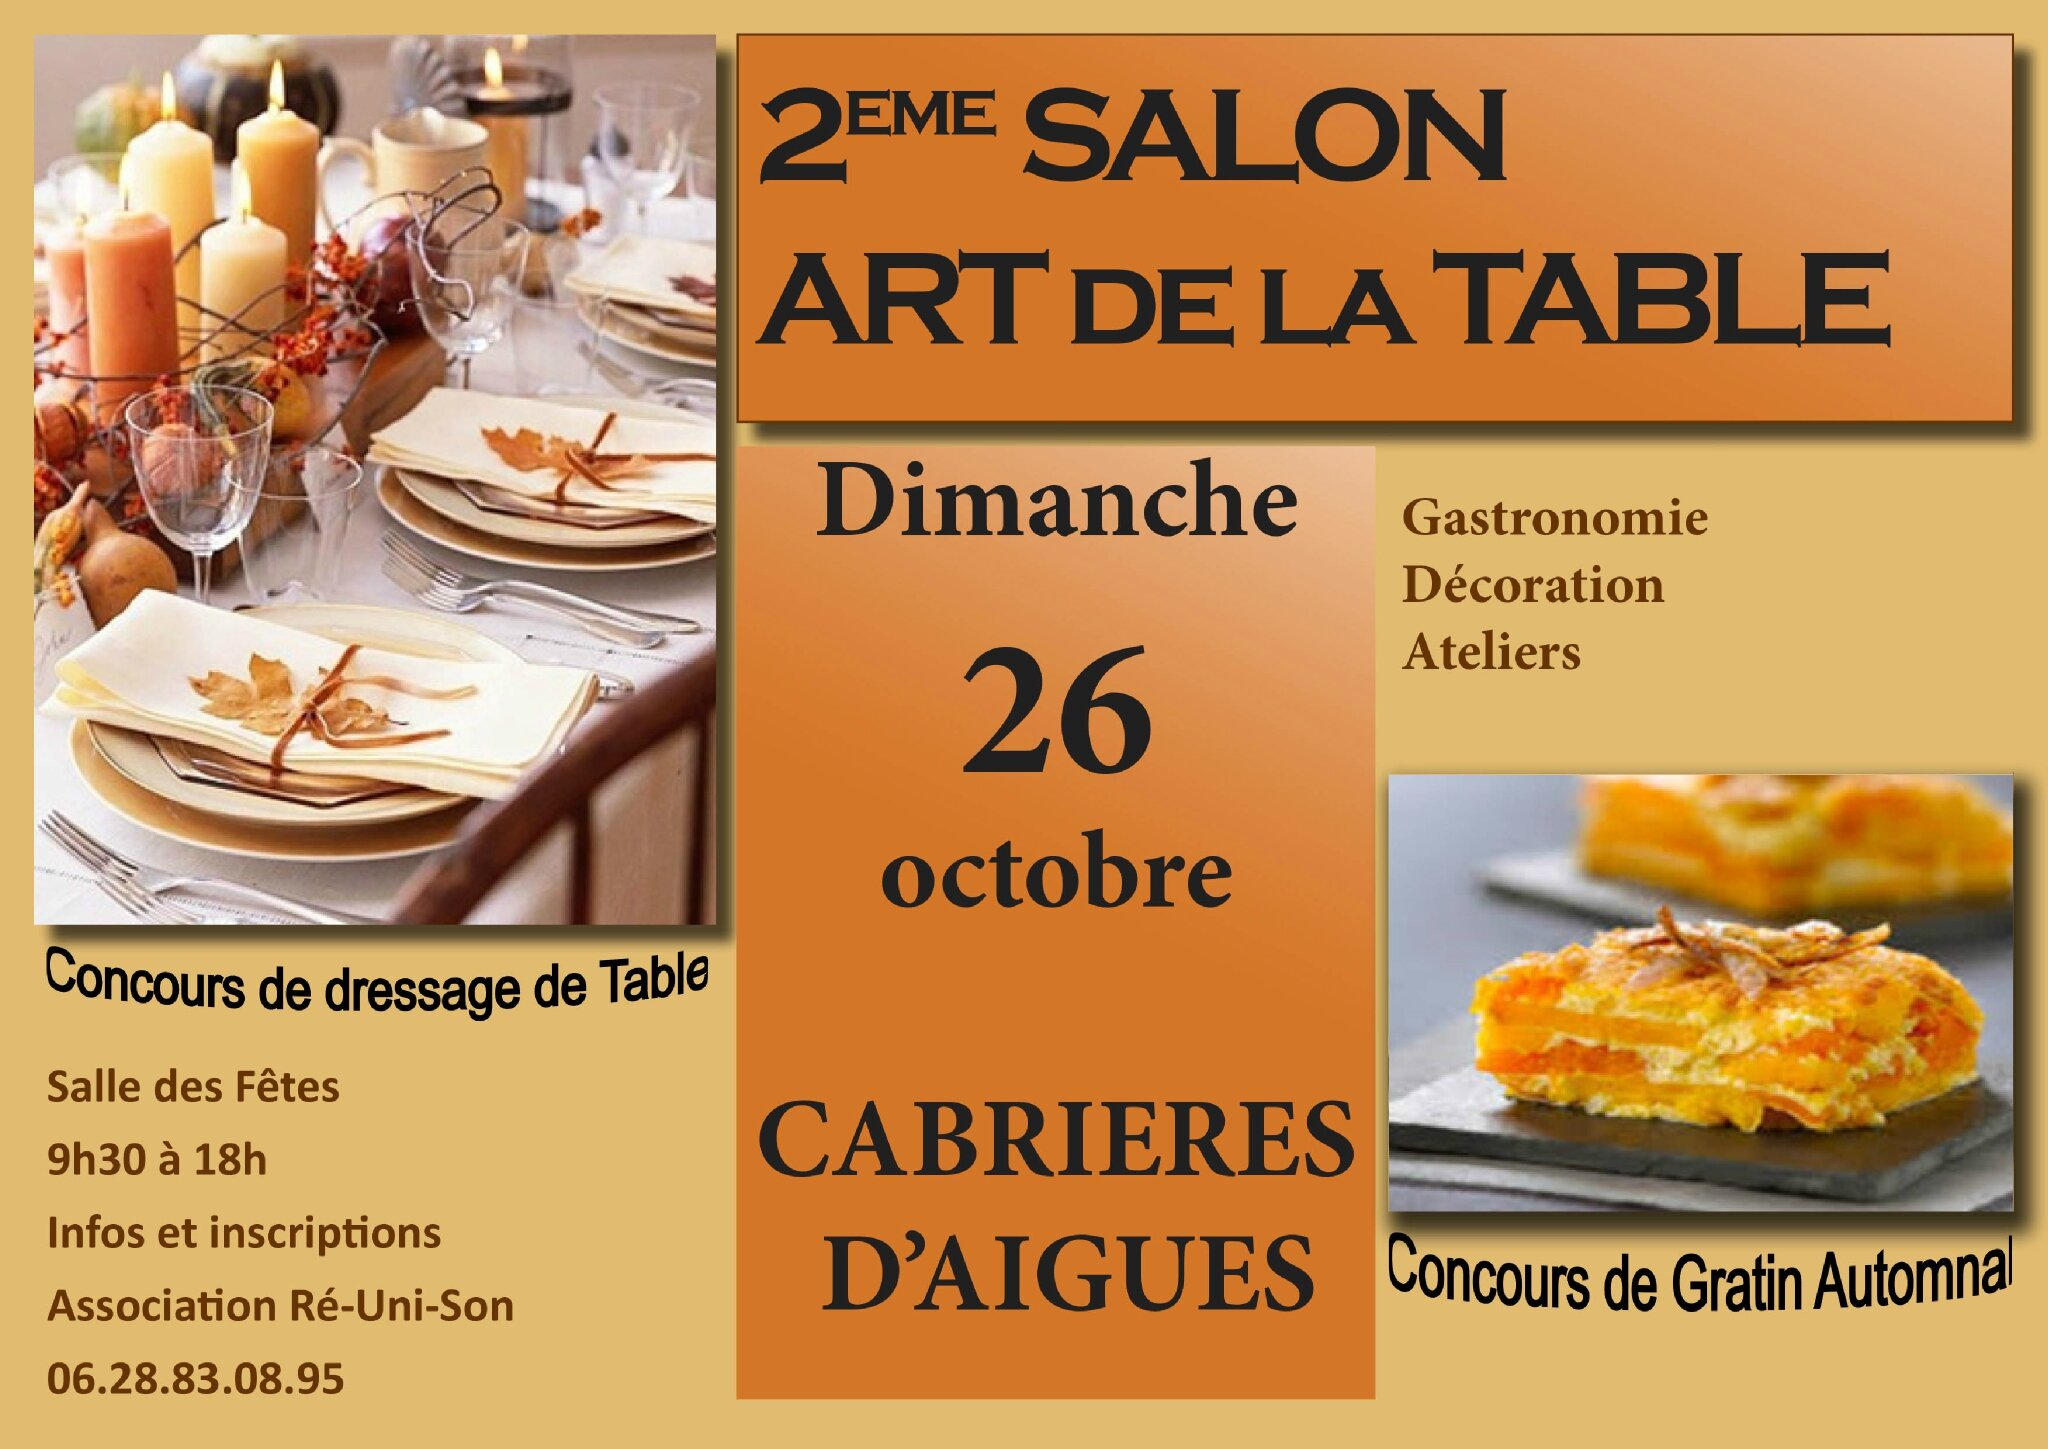 2eme salon des arts de la table potins de fleurs - Salon art de la table ...